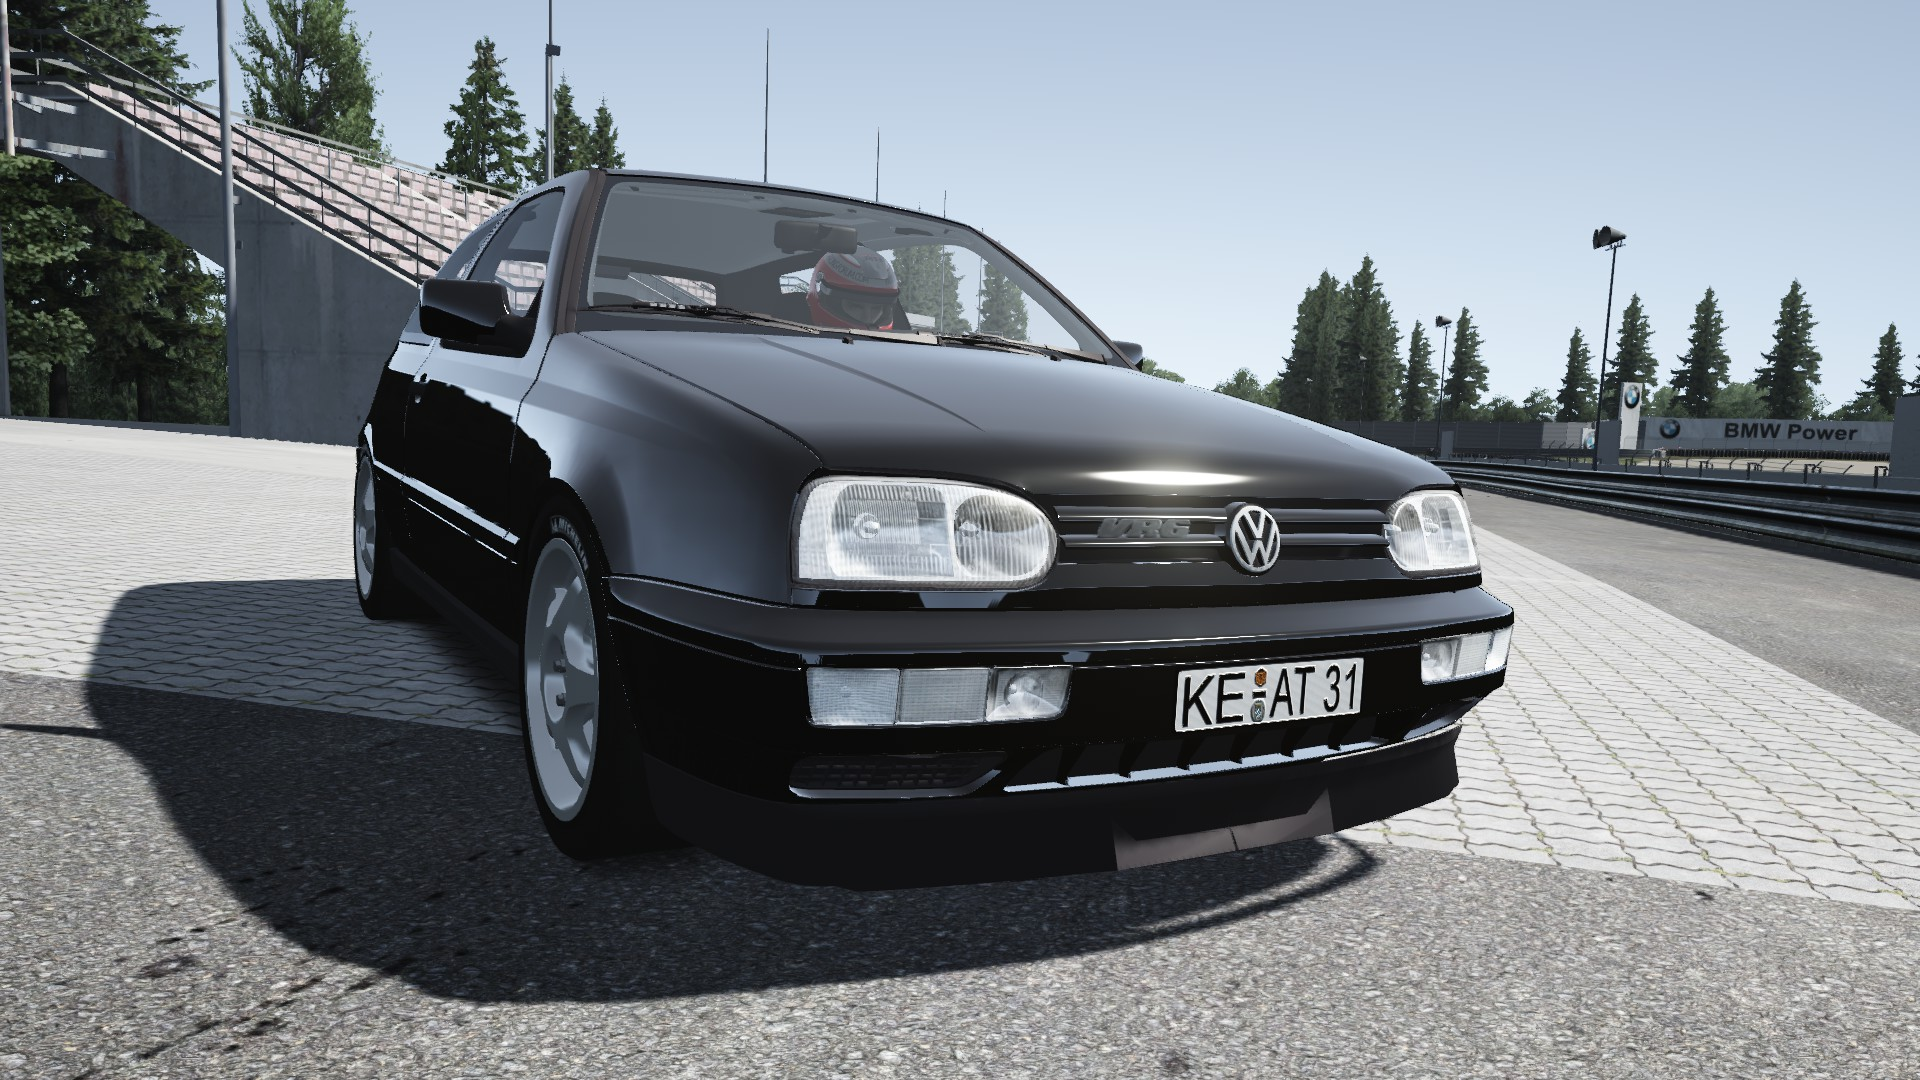 vw golf iii abt vr6 syncro volkswagen car detail assetto corsa database. Black Bedroom Furniture Sets. Home Design Ideas